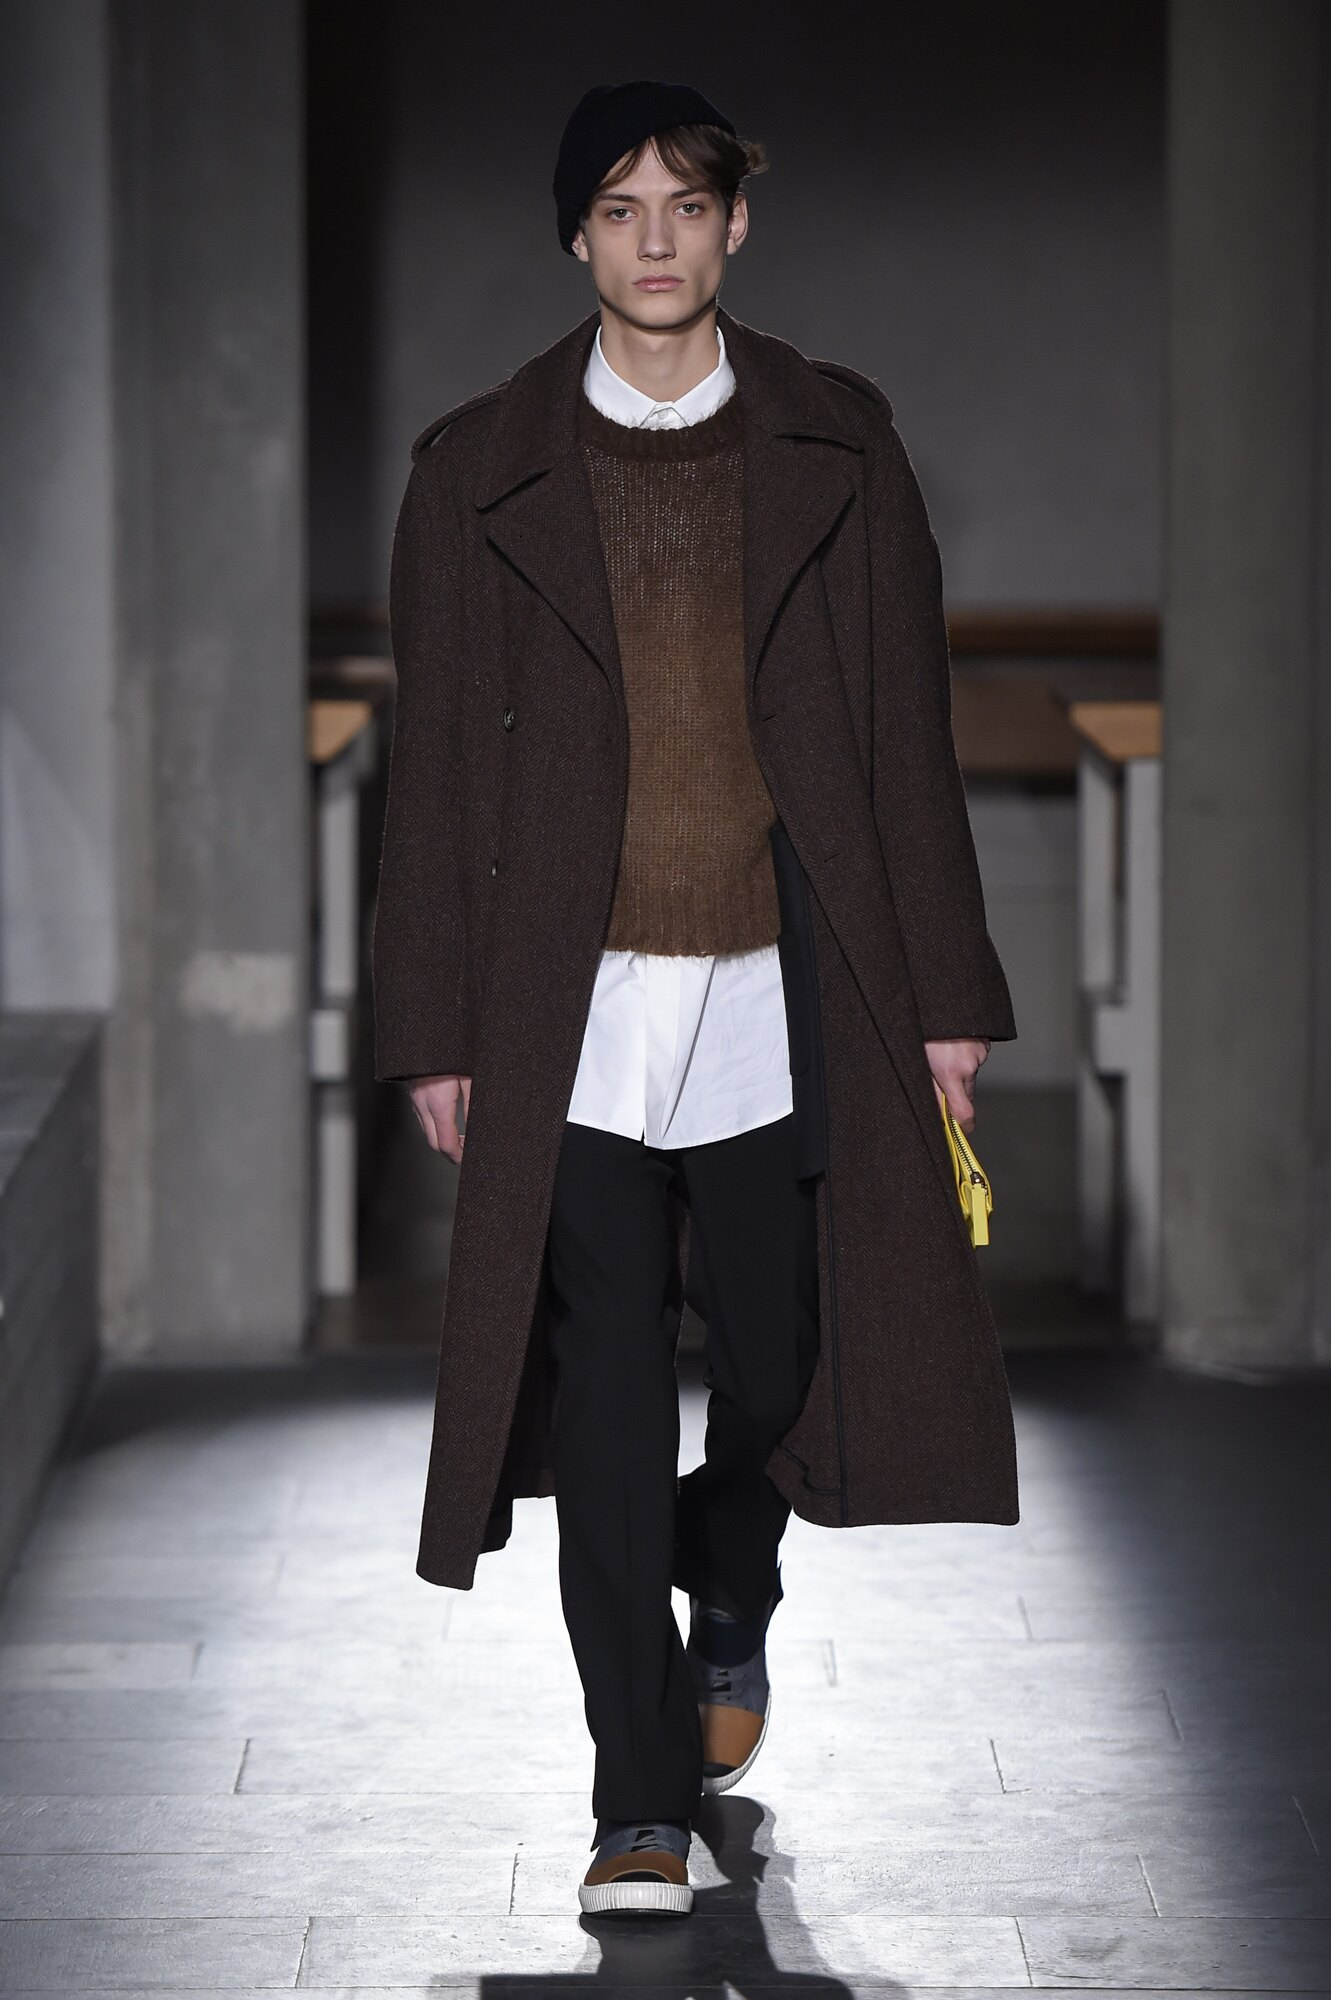 Marni Fall Winter 2015 Mens Collection Pitti Immagine Uomo